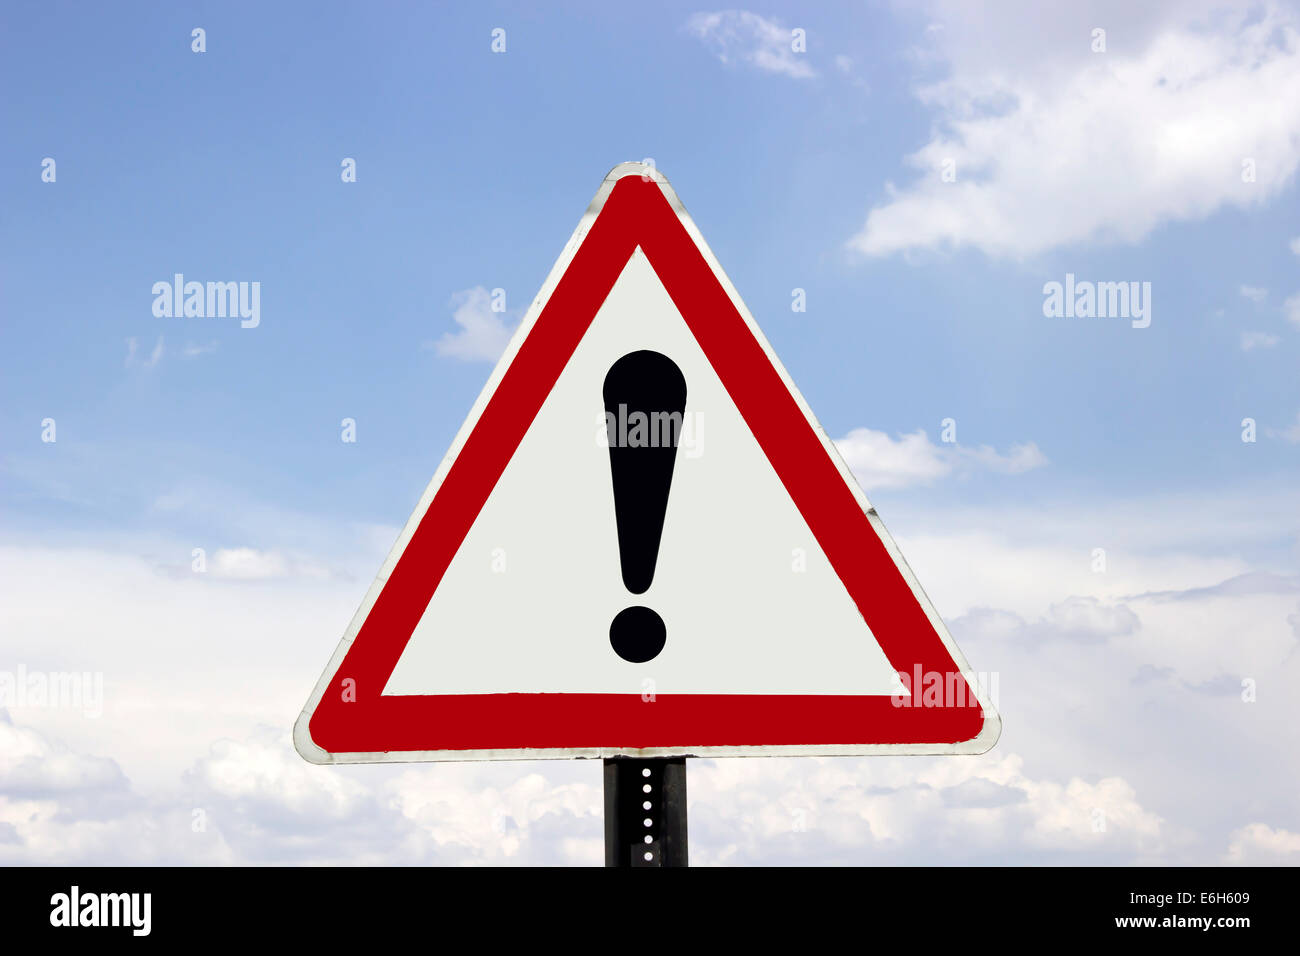 exclamation sign - Stock Image